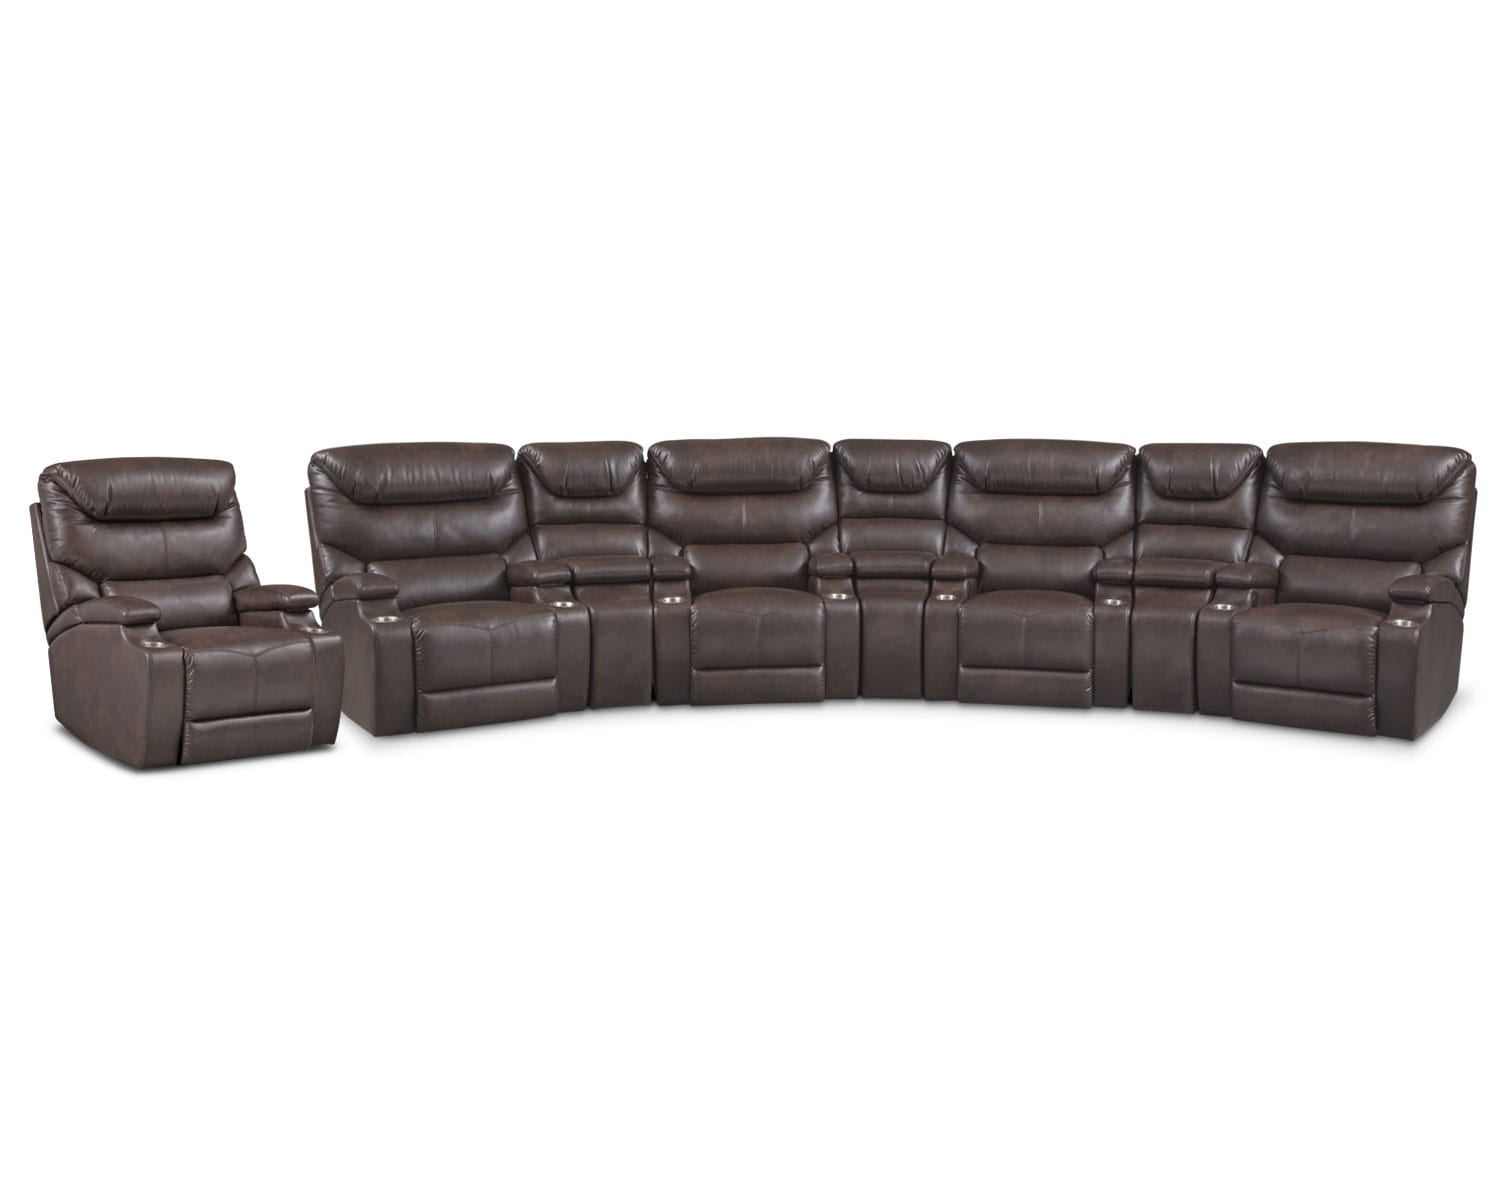 The Jupiter Brown Home Theatre Collection